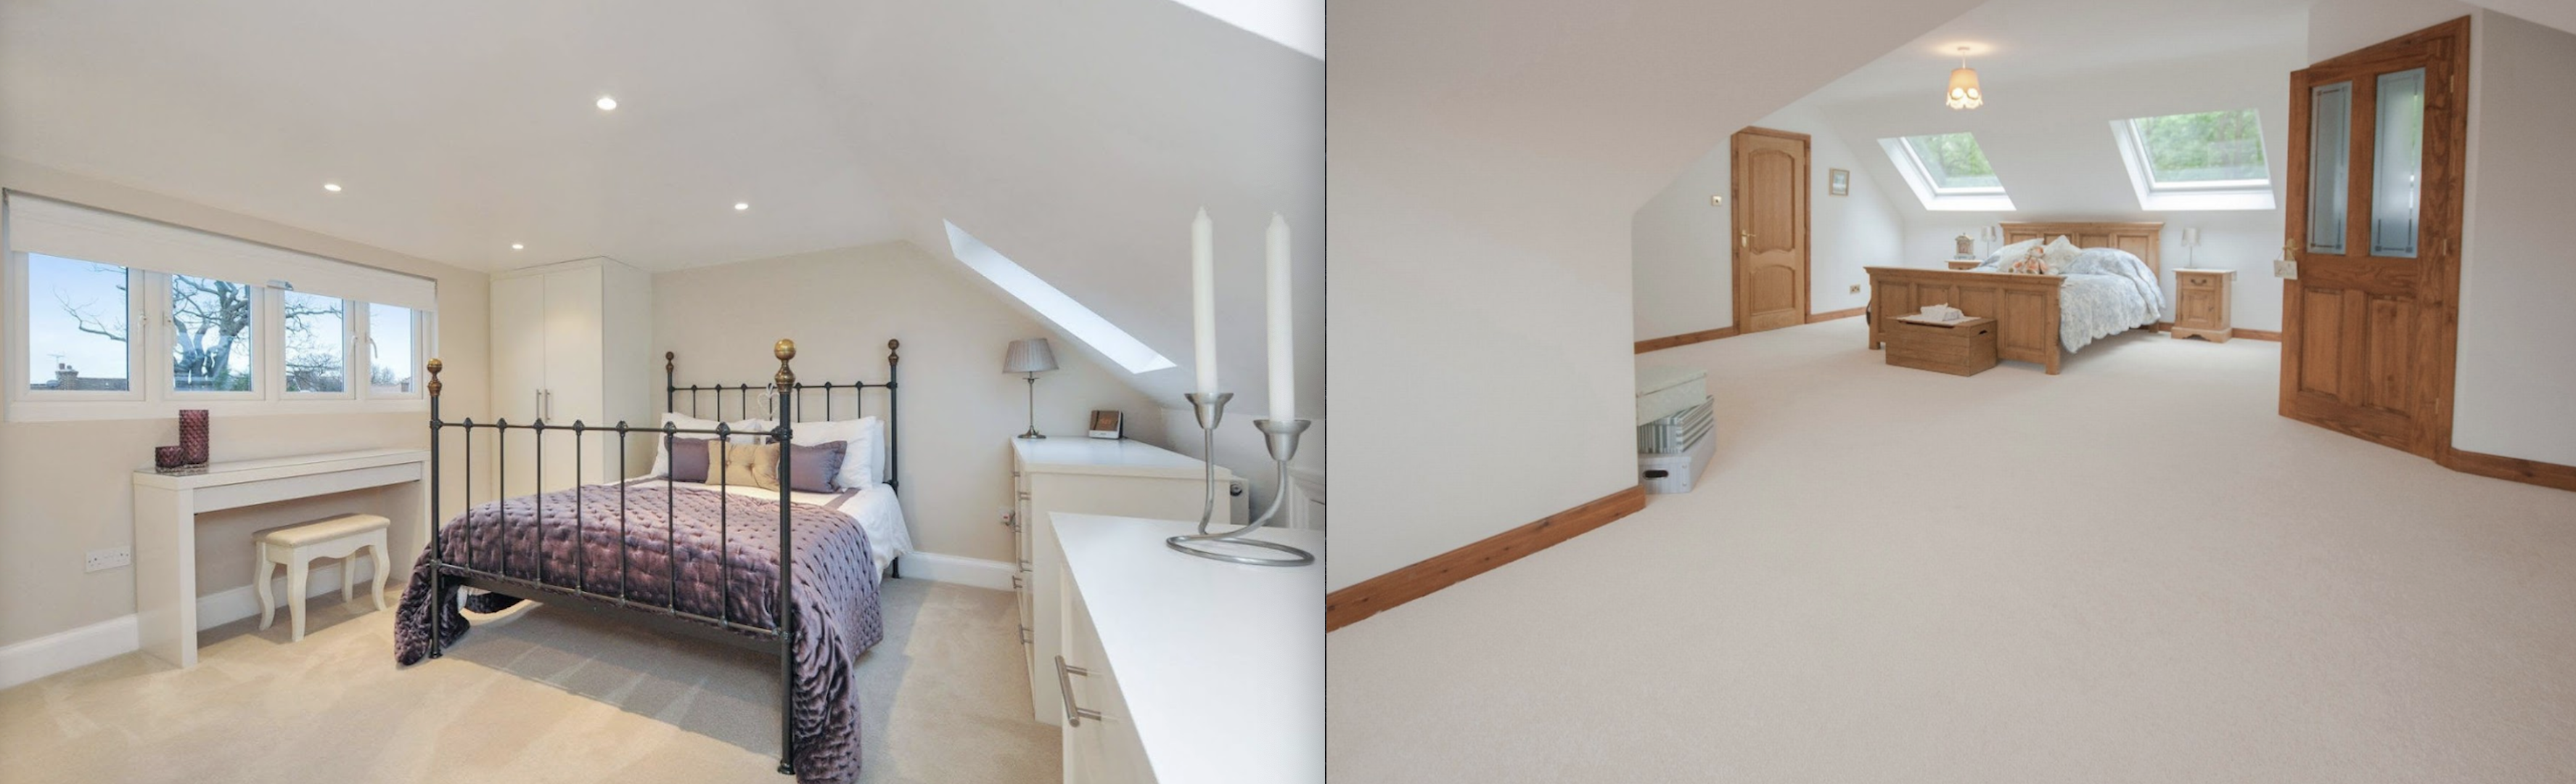 Beautiful Dormer loft conversion in Rochdale, creating a new master bedroom with private bathroom, walk in wardrobe and stunning new oak staircase with Velux polyurethane SK06 GPU windows.